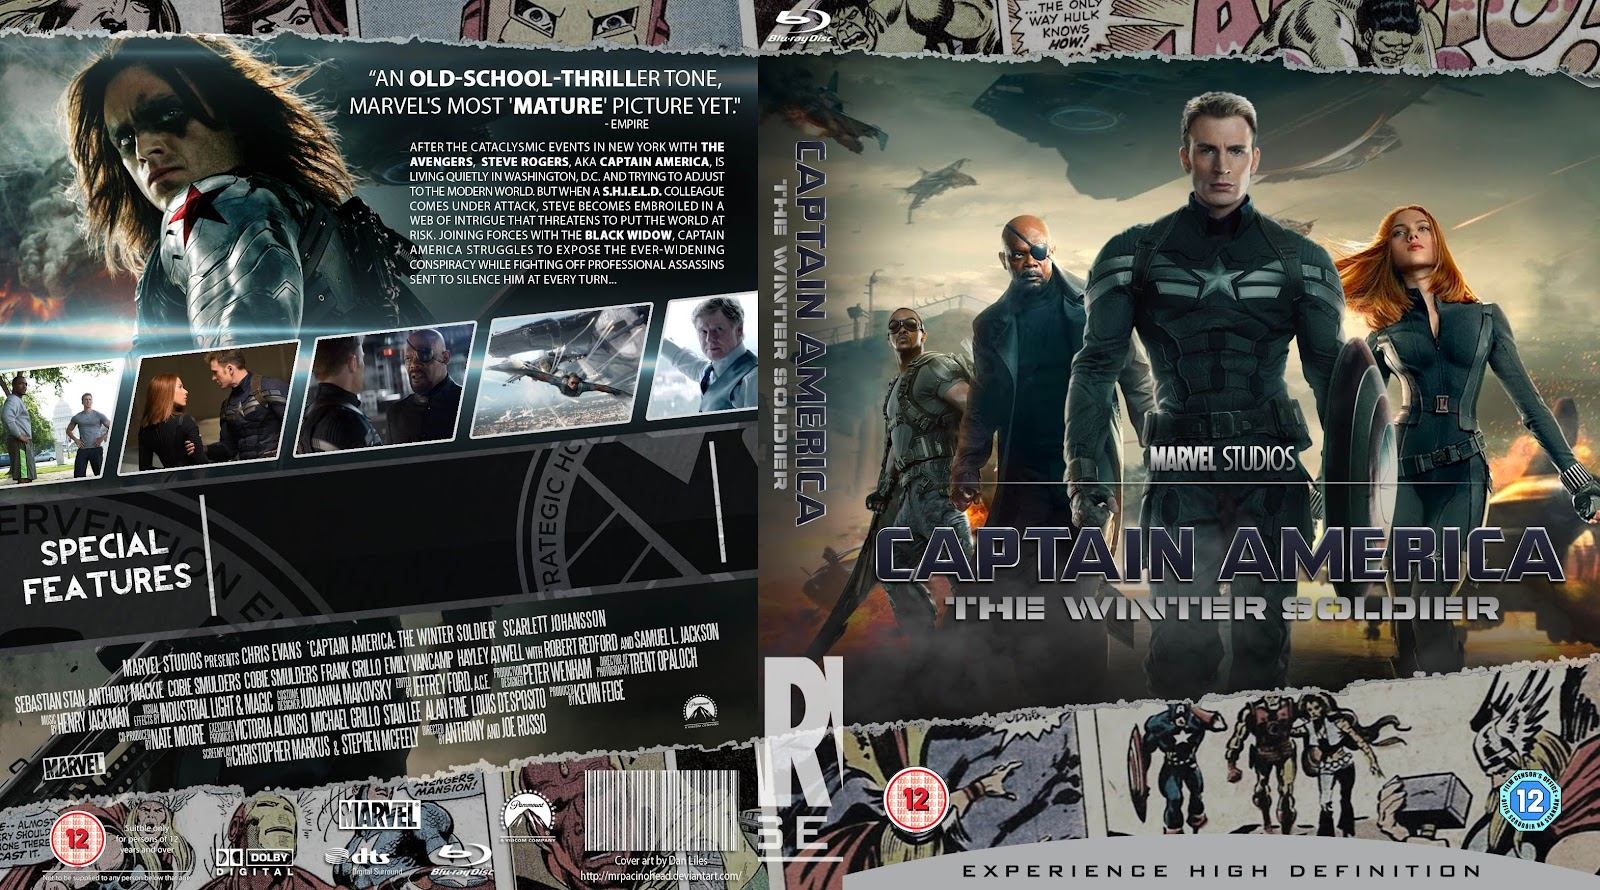 Capa Bluray Captain America The Winter Soldier